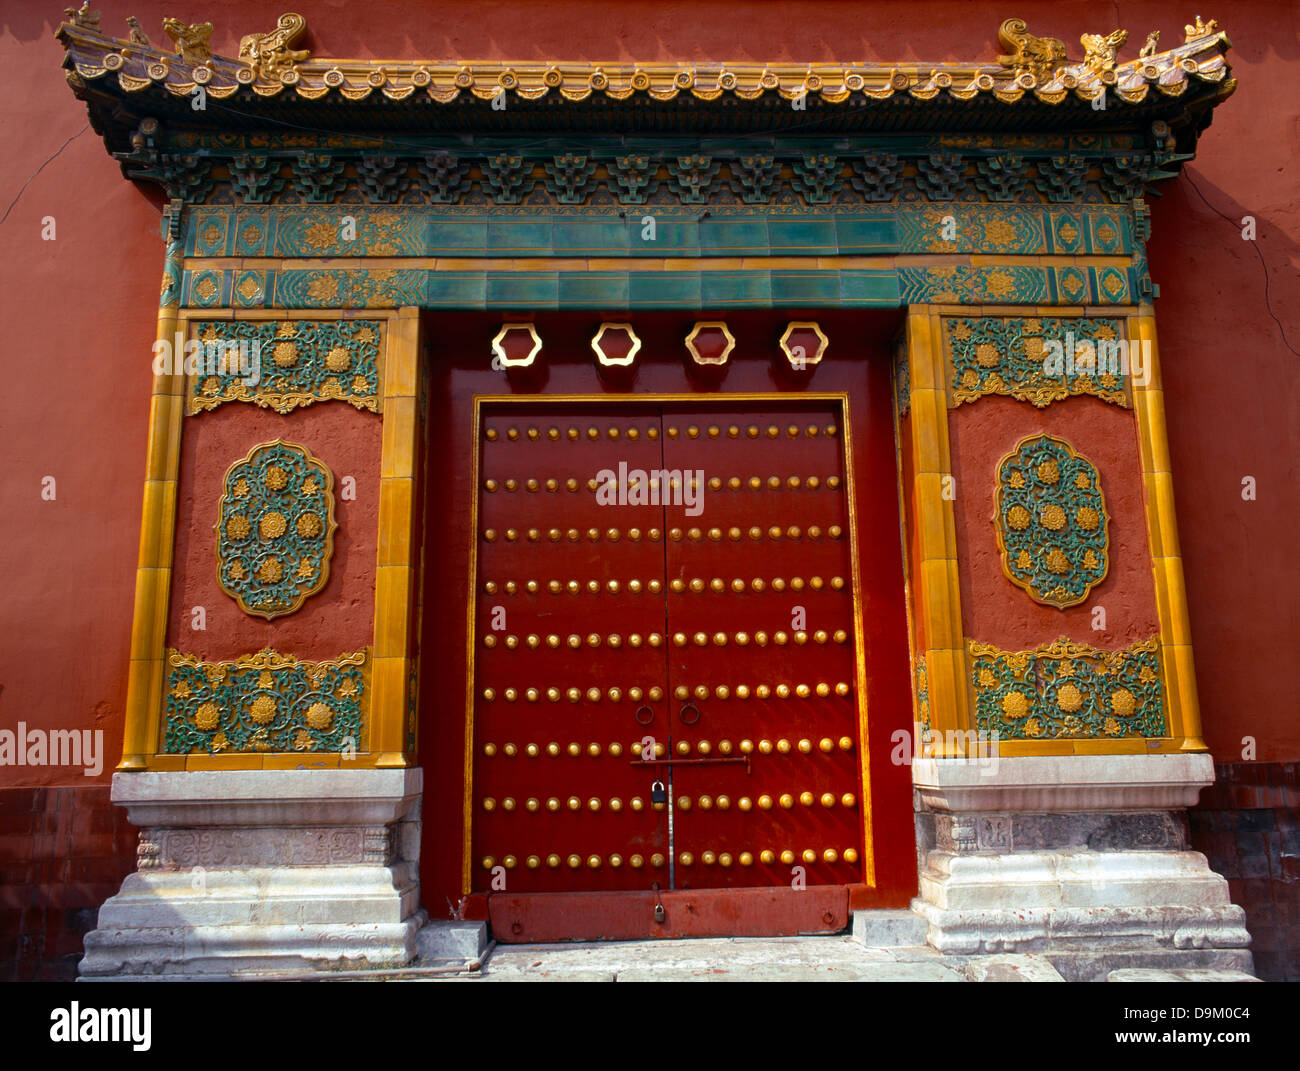 ... China Forbidden City Built in Ming and Qing Dynasty 1406 - 1420 AD Between 4th \u0026 18th Years of Yongle Period - -decorative Tiled Gateway \u0026 Studded Doors & Beijing China Forbidden City Built in Ming and Qing Dynasty 1406 ...